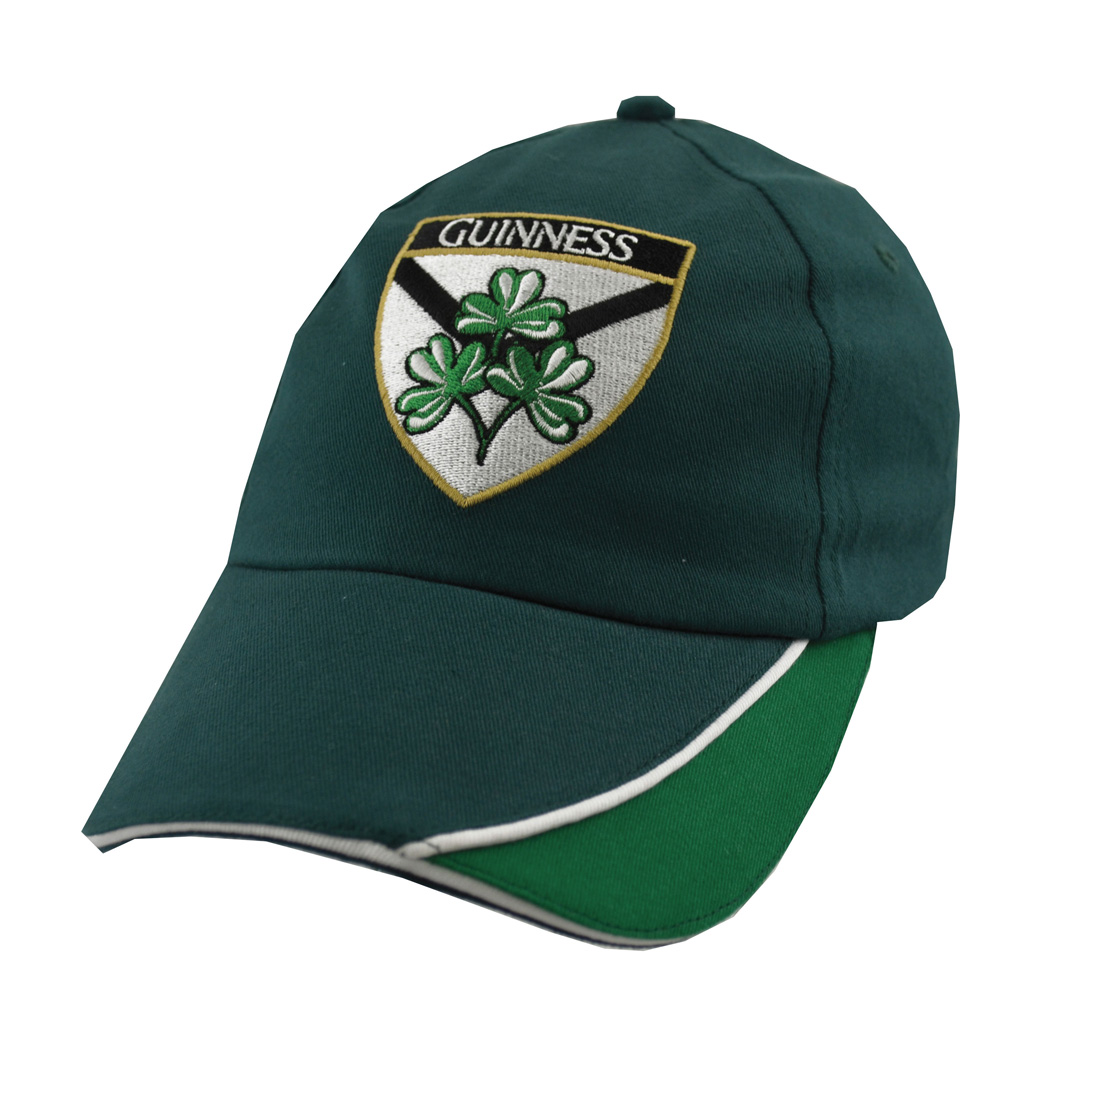 Green Guinness Shamrock Baseball Hat